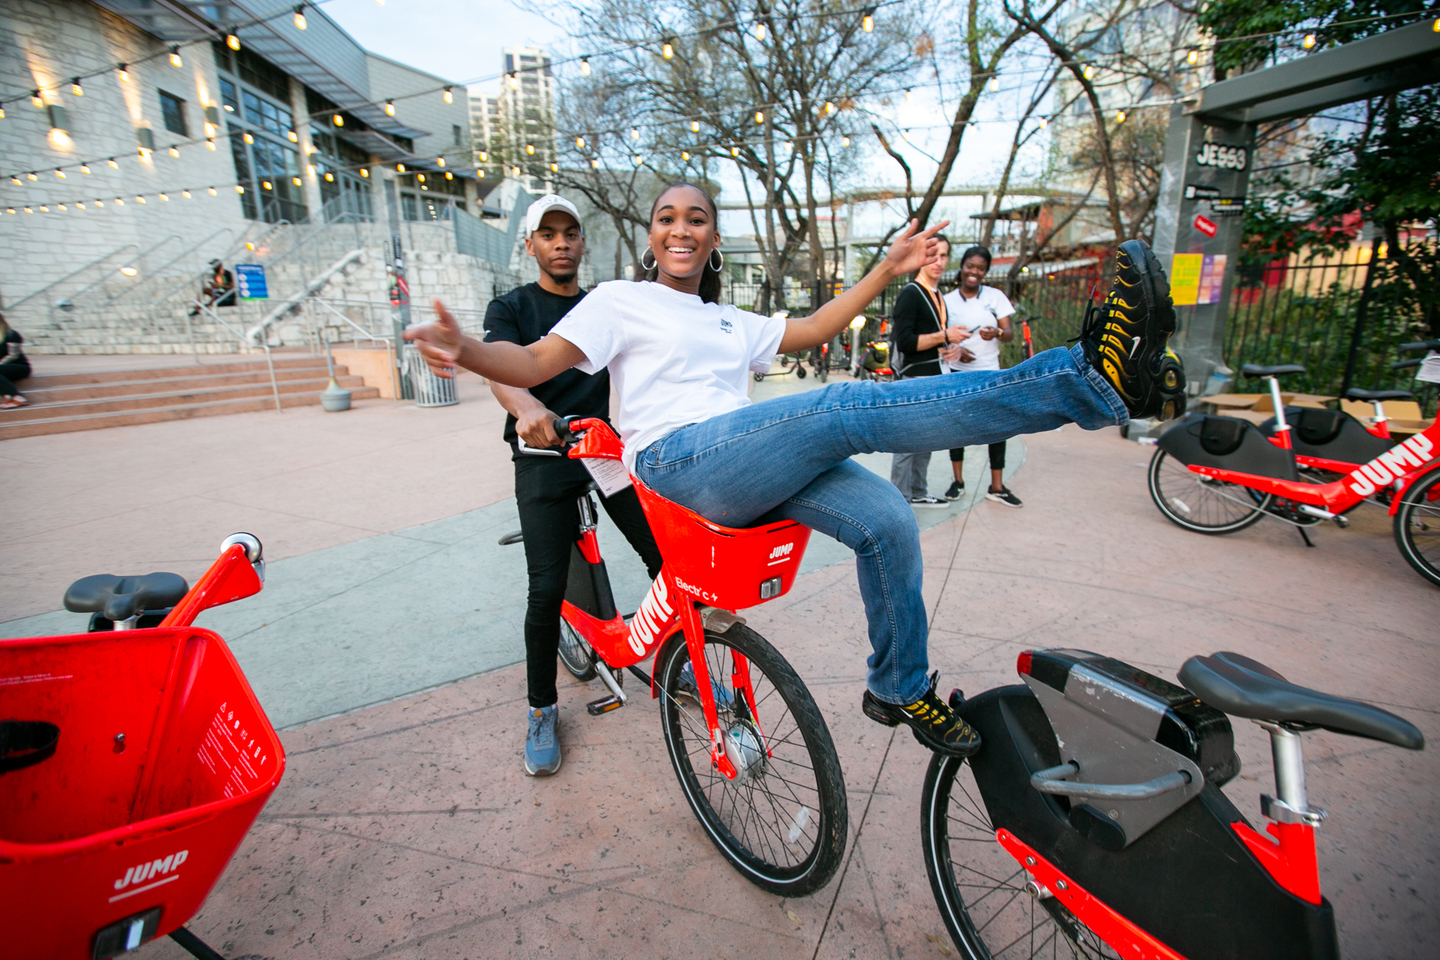 JUMP is one of the fastest ways to get around SXSW – with exclusive pickup and dropoff areas for JUMP electric bikes and scooters around the Austin Convention Center, available directly through your Uber app. Photo by Waytao Shing